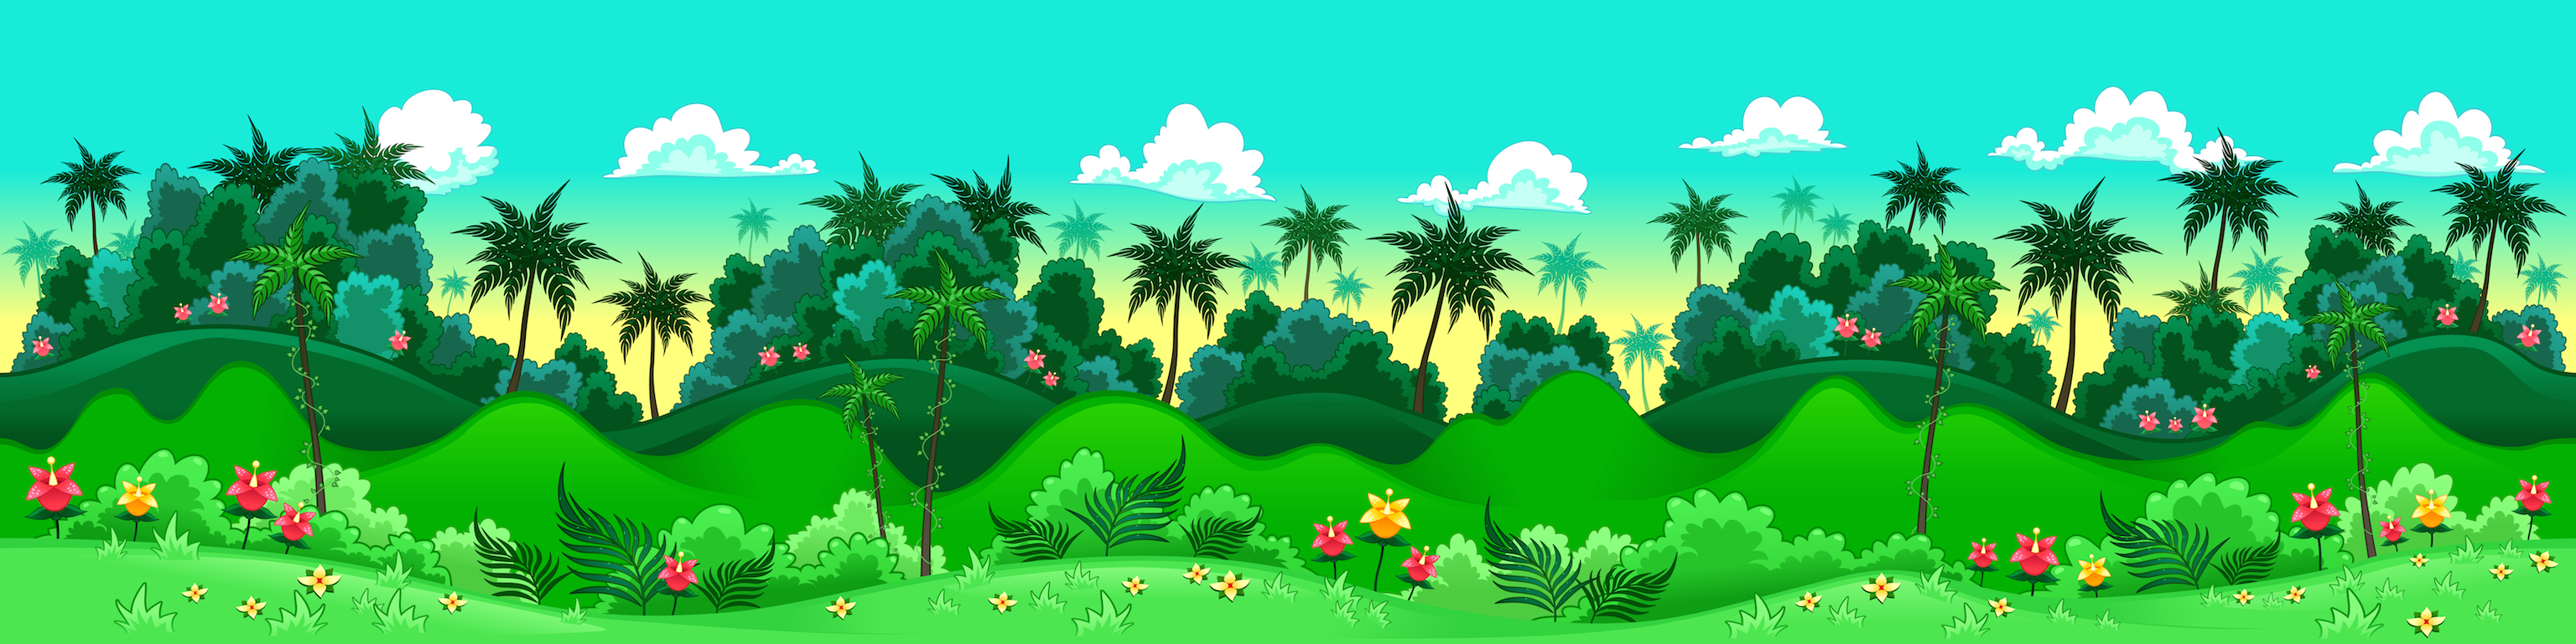 background scene - seamless jungle